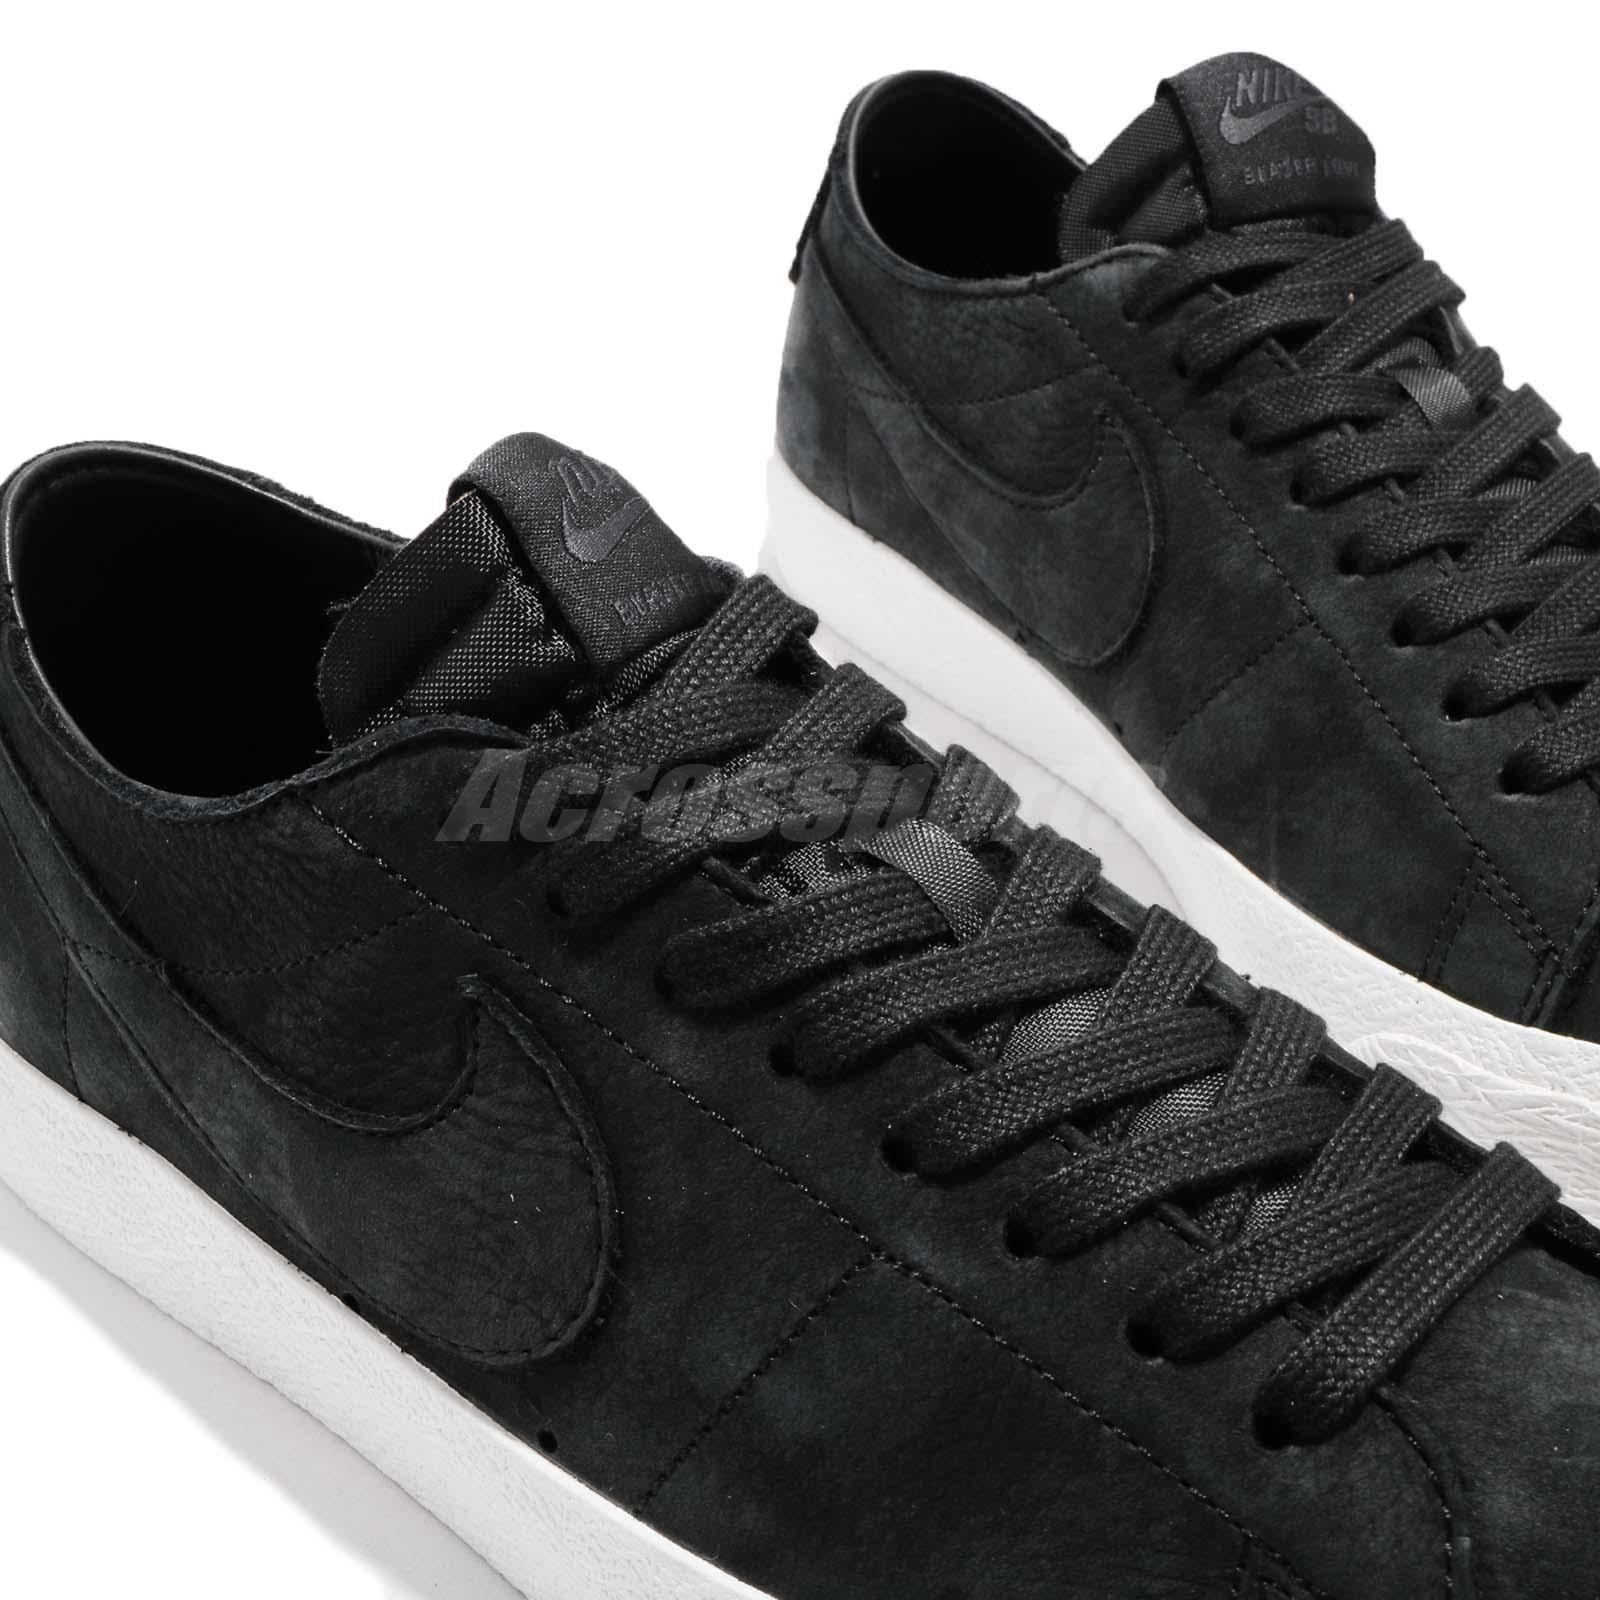 detailed look bb7a5 cbb2d Nike SB Zoom Blazer Low Decon Black Anthracite Men Skate Boarding ...